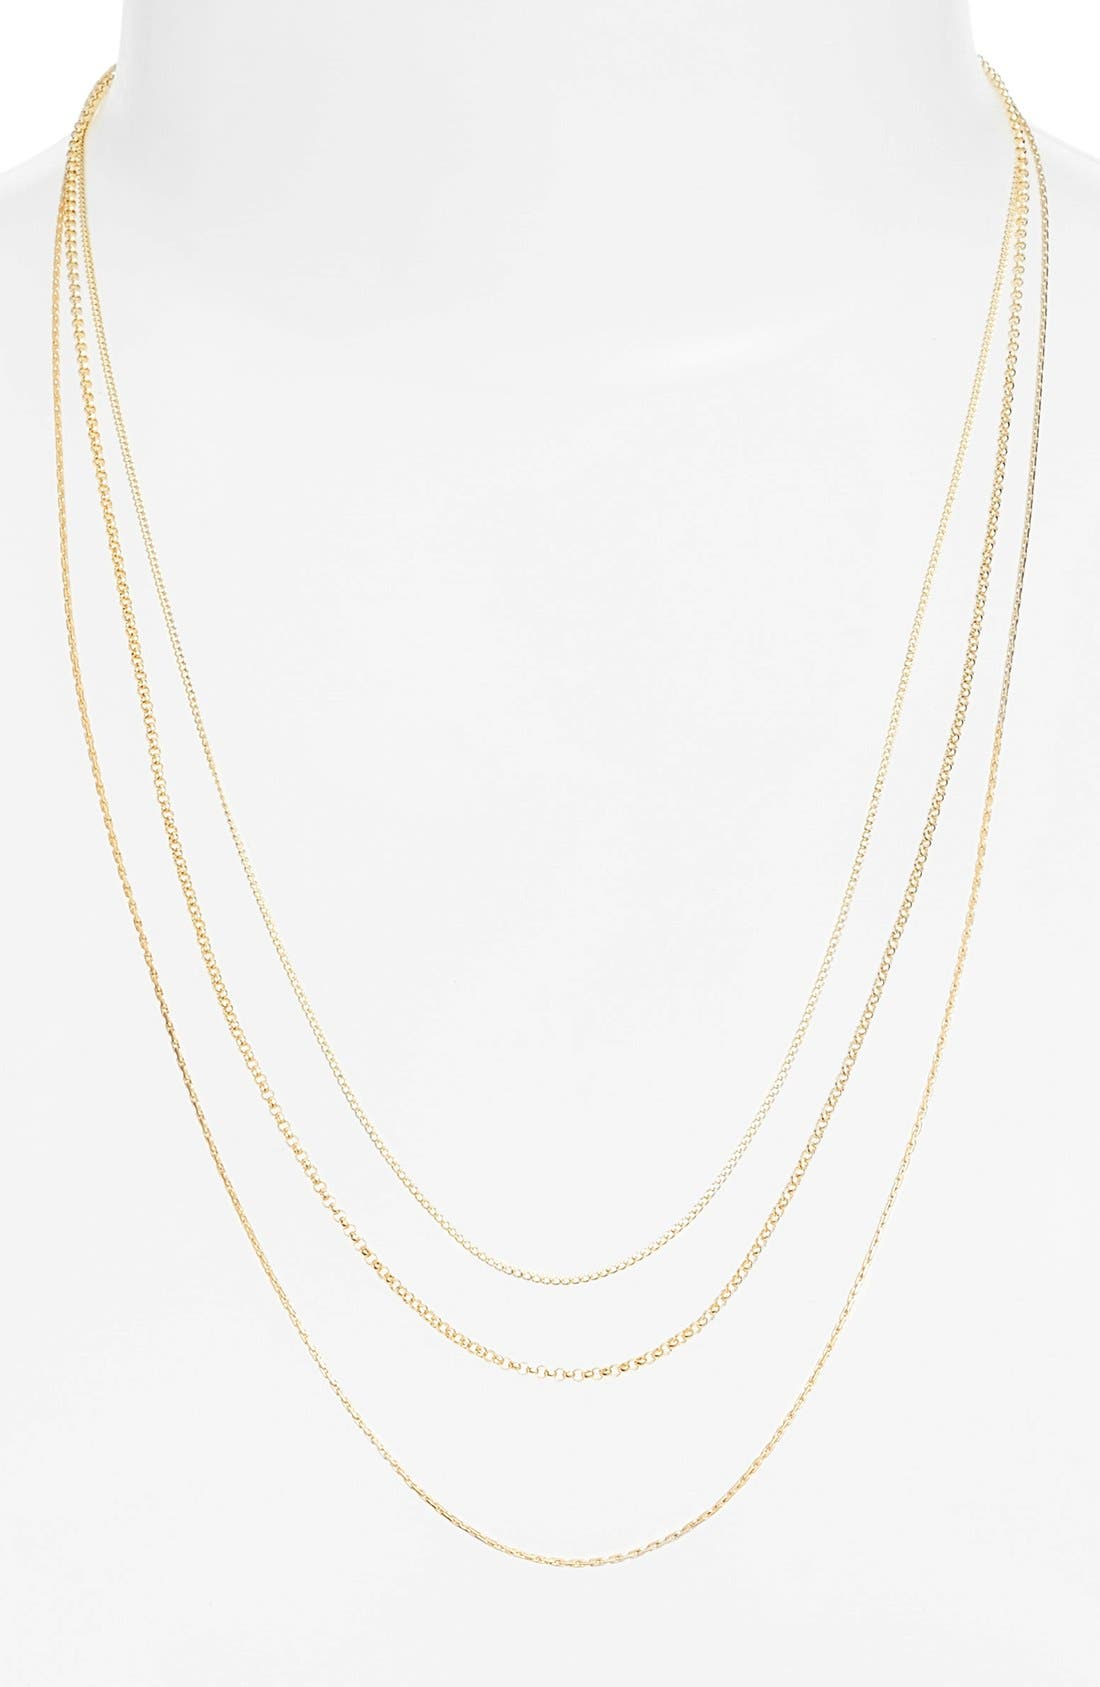 Multistrand Chain Necklace,                             Main thumbnail 1, color,